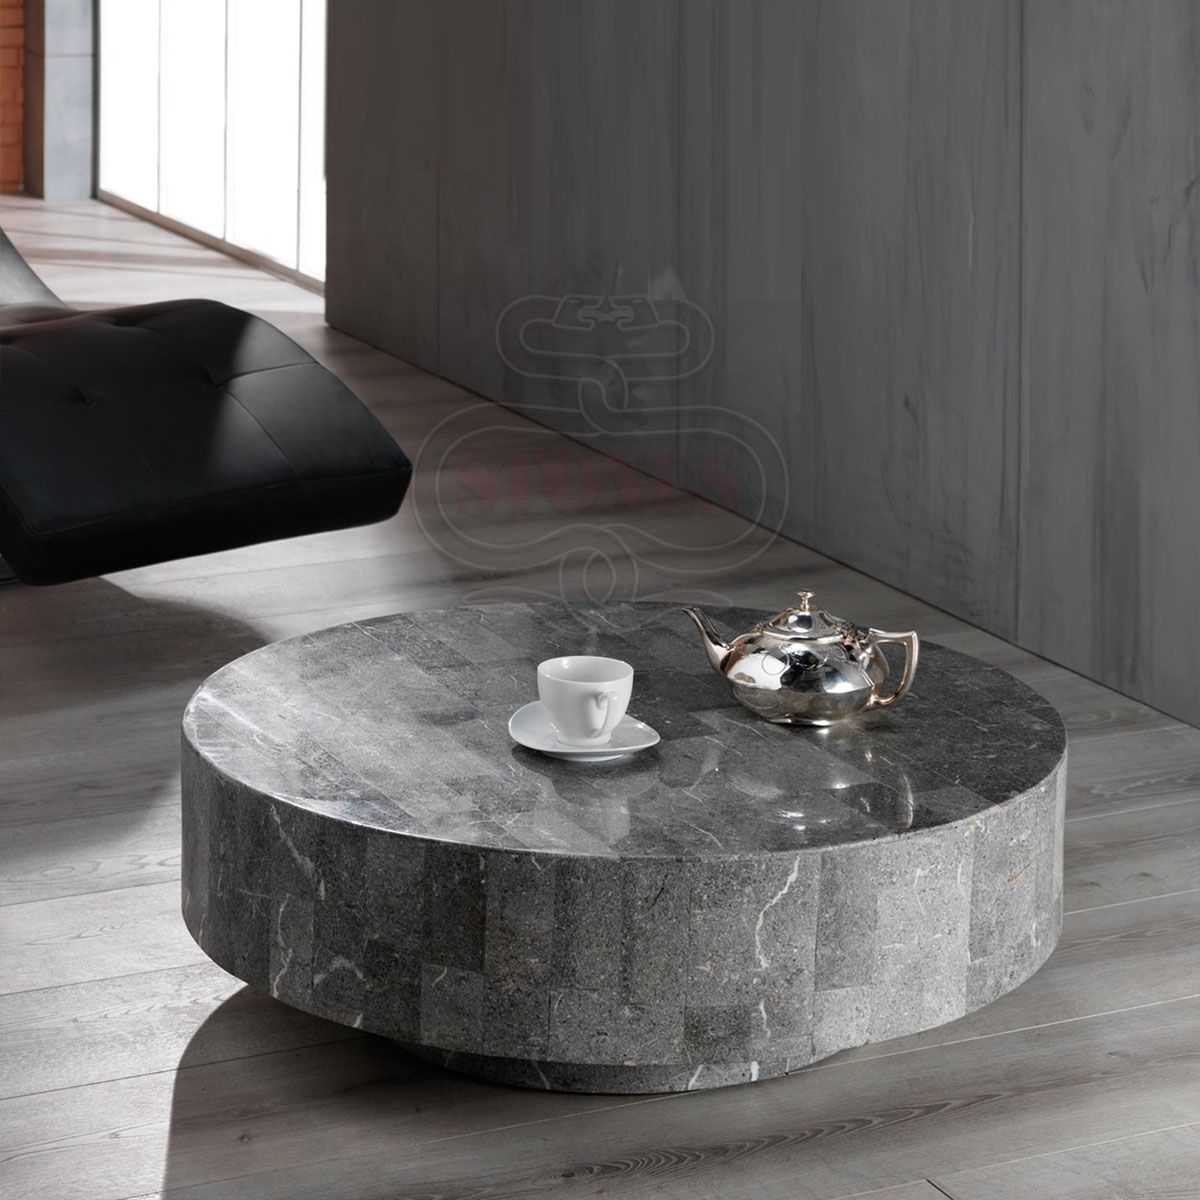 Stone Base Coffee Table.Appealing Ideas Of Furniture In Your Home With Stone Coffee Table